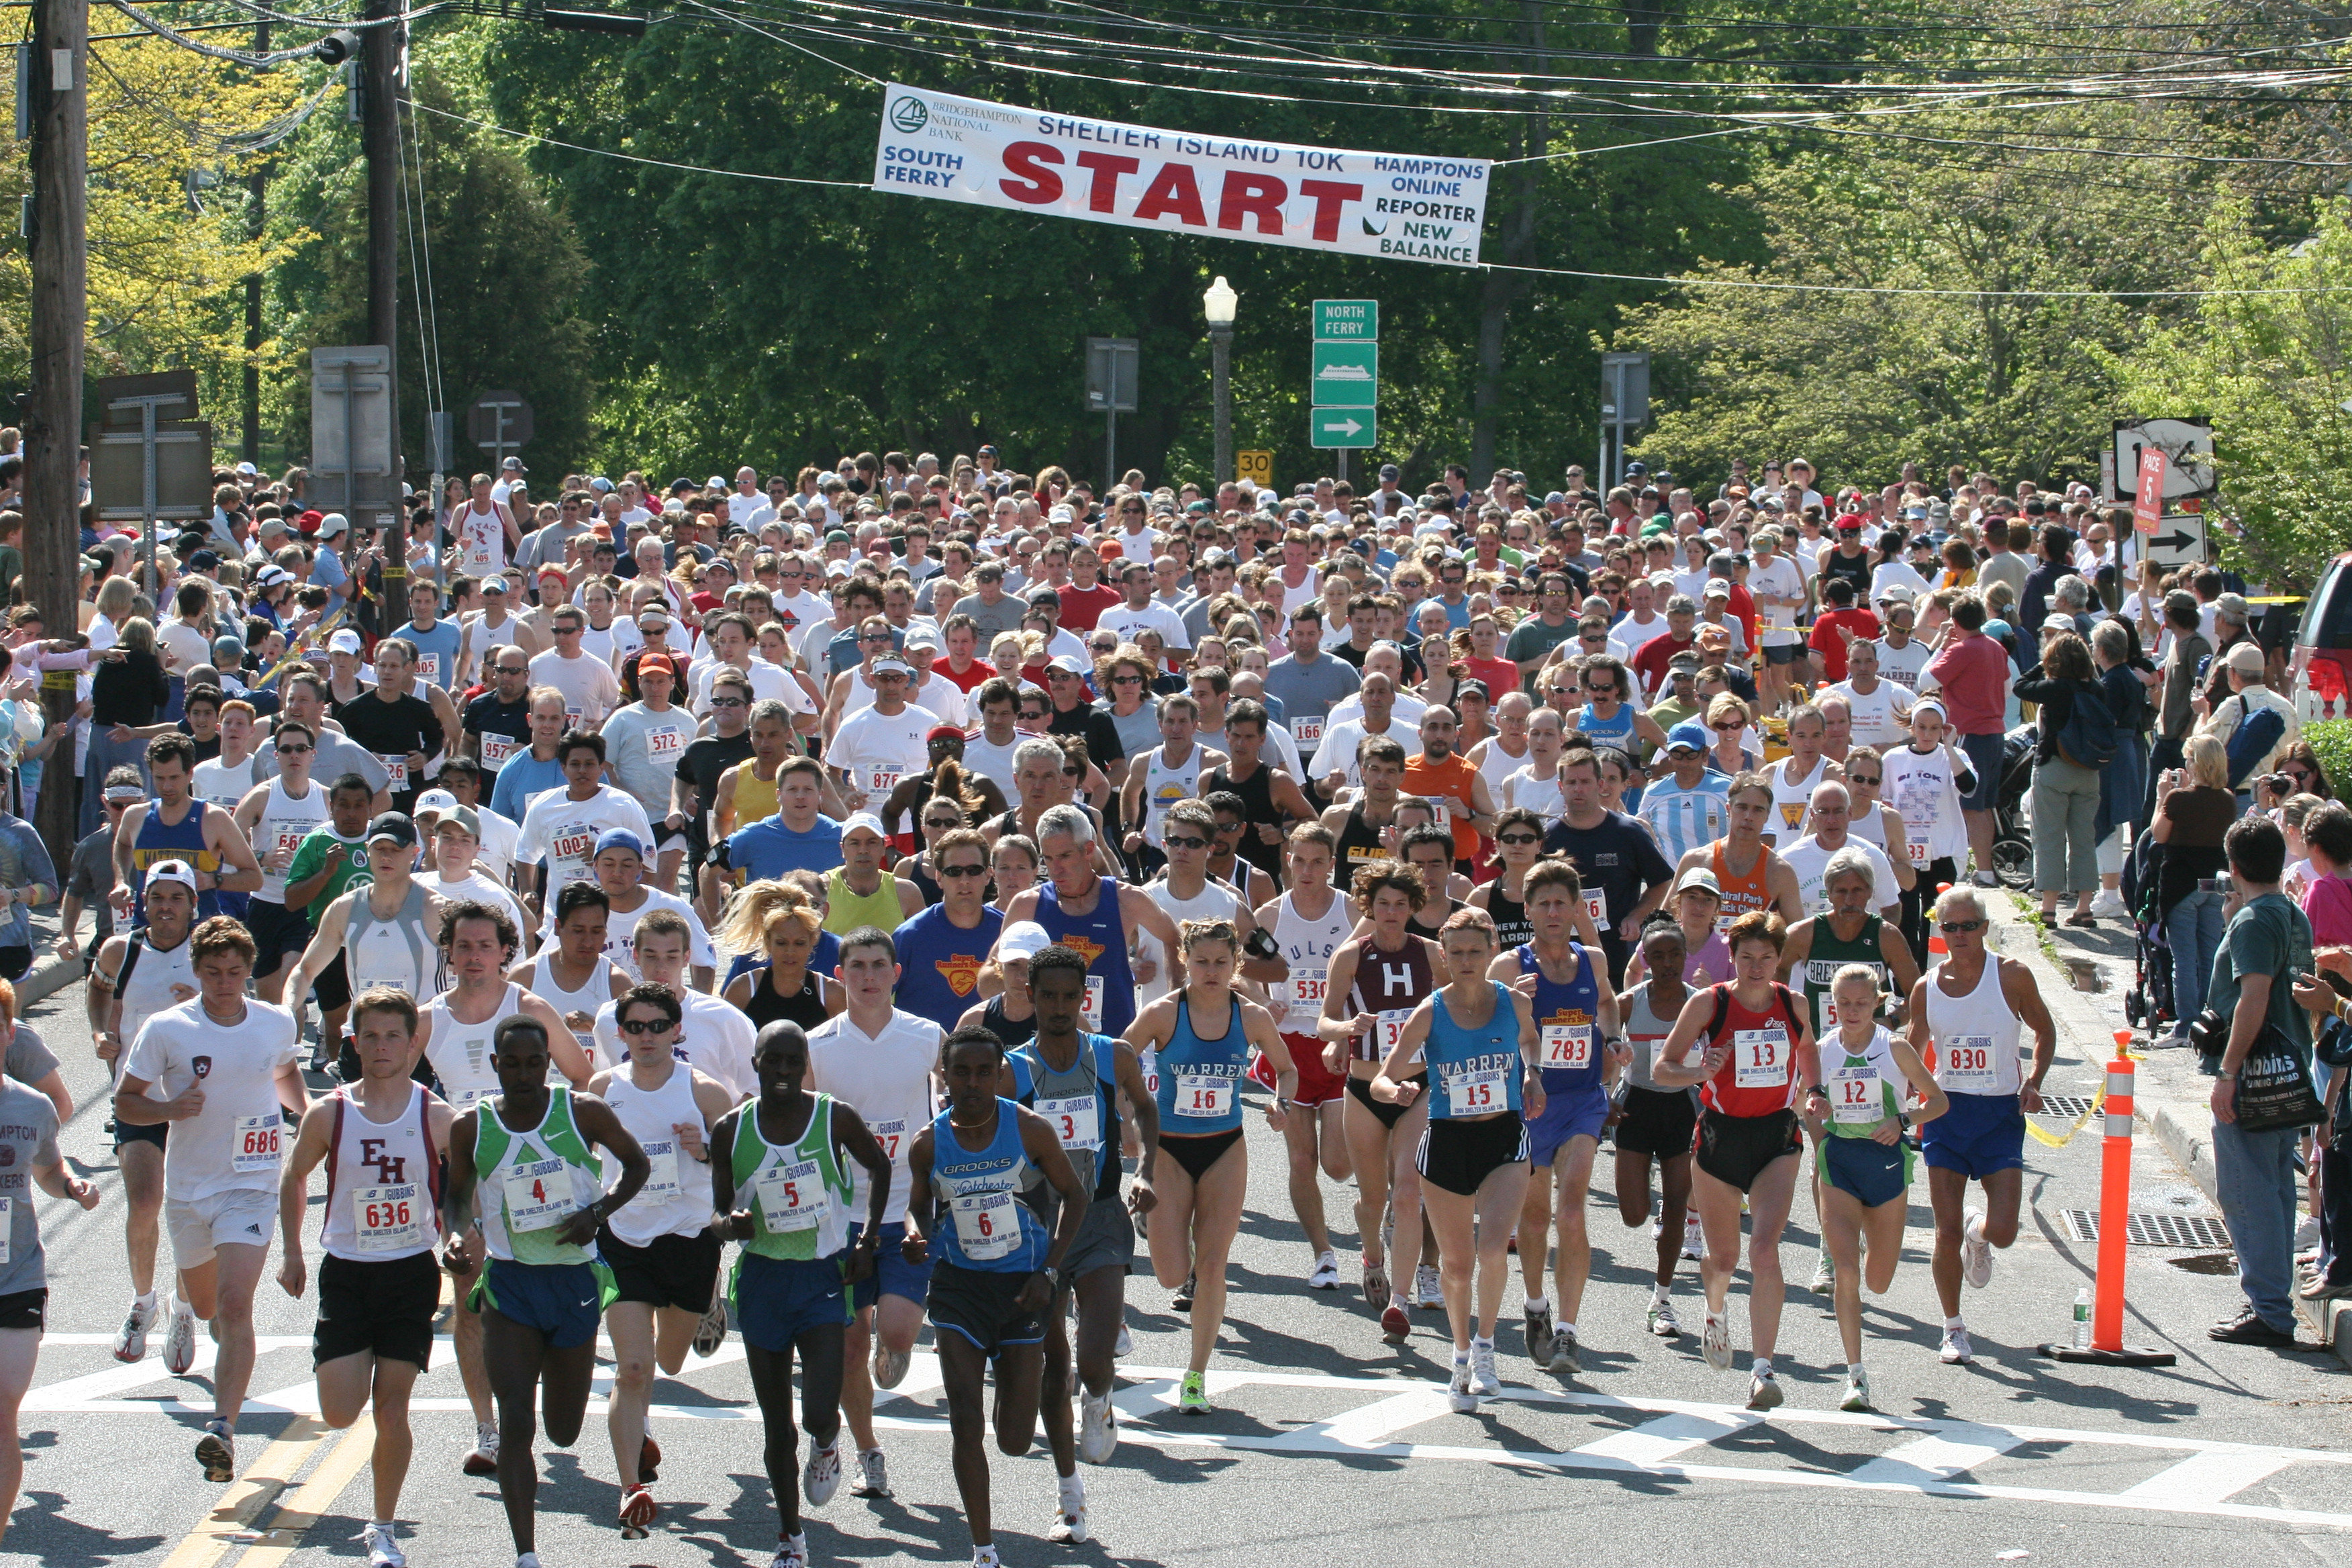 Shelter Island 10K is celebrating it's 40th year this weekend honoring some of the country's Best Runners